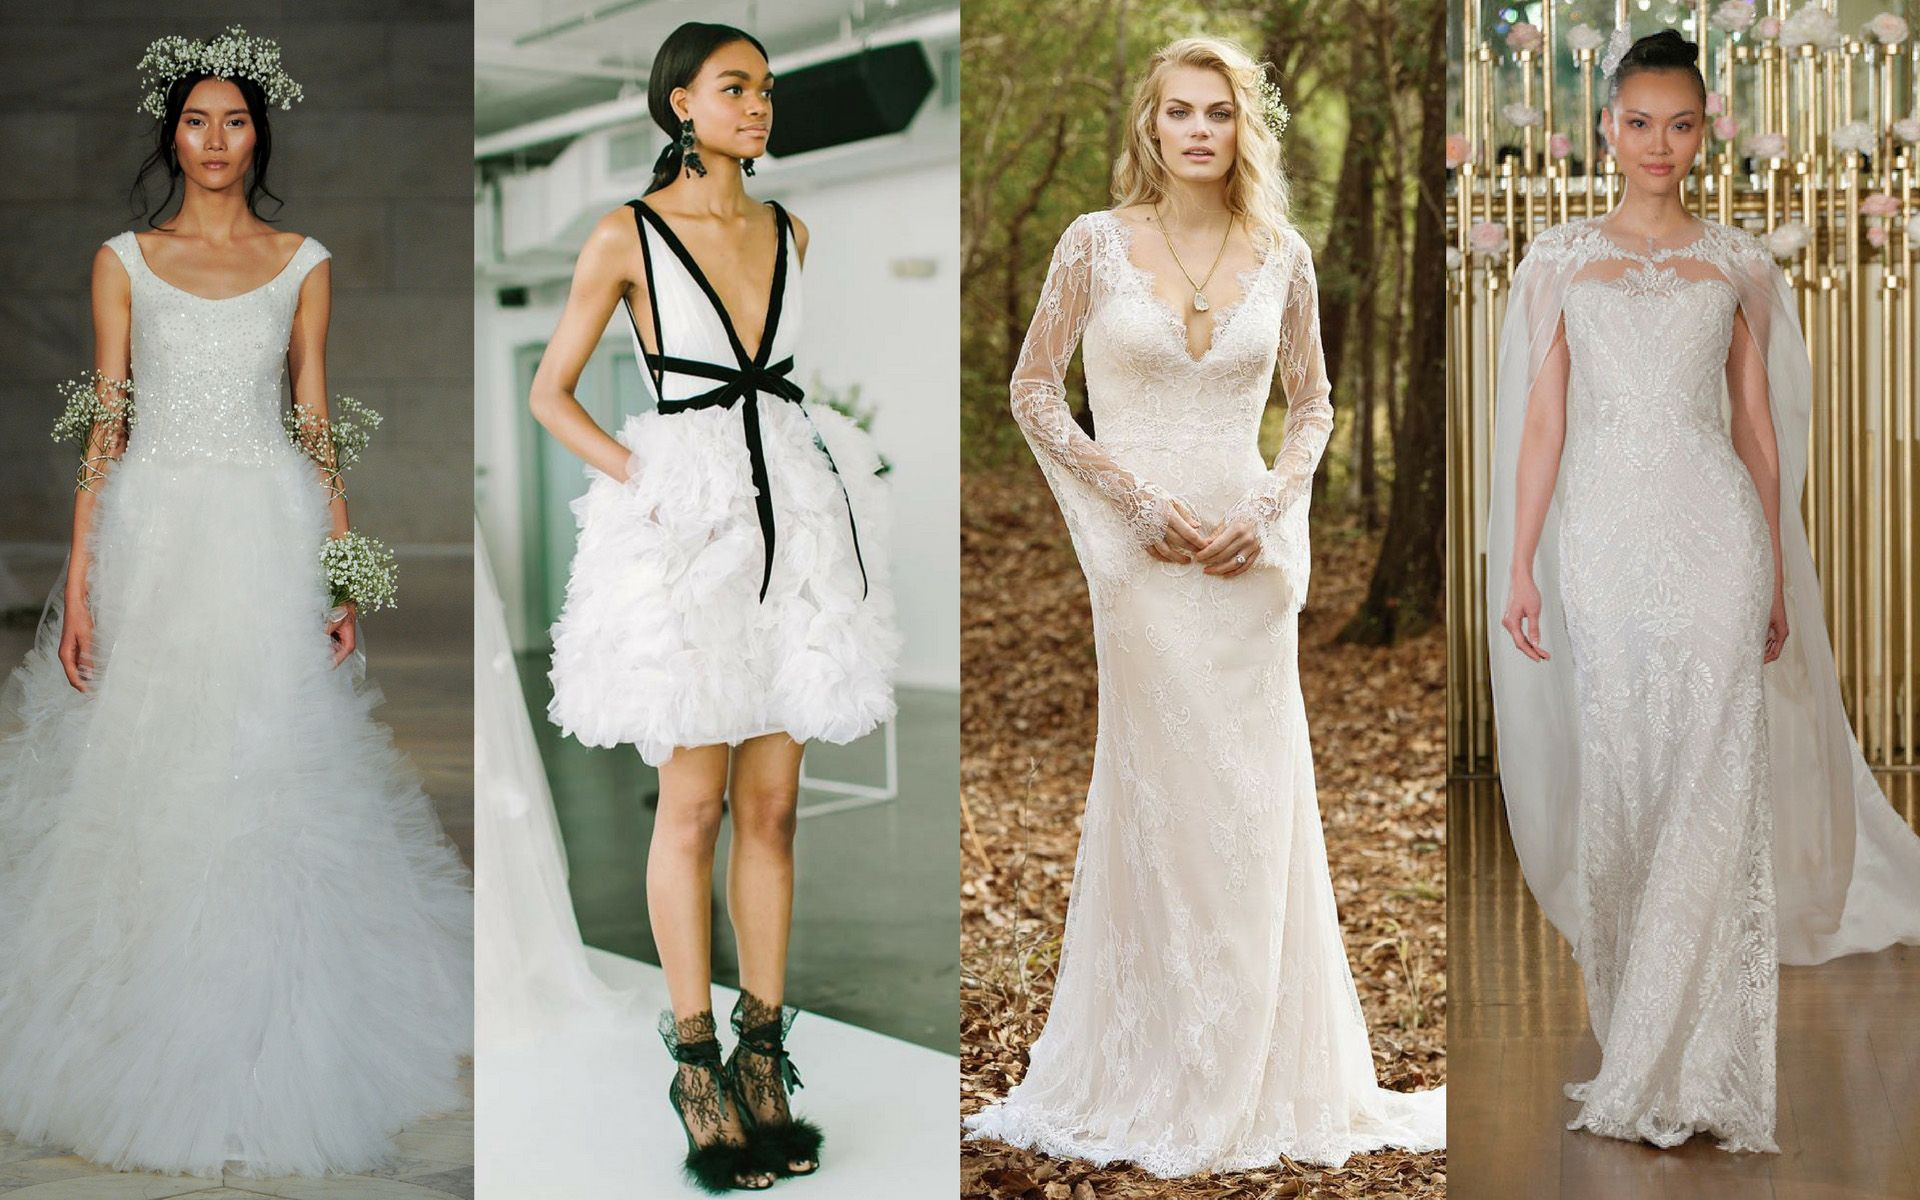 5 Classic Bridal Dress Trends That Are Forever, And The 15 Ways To Wear Them Today